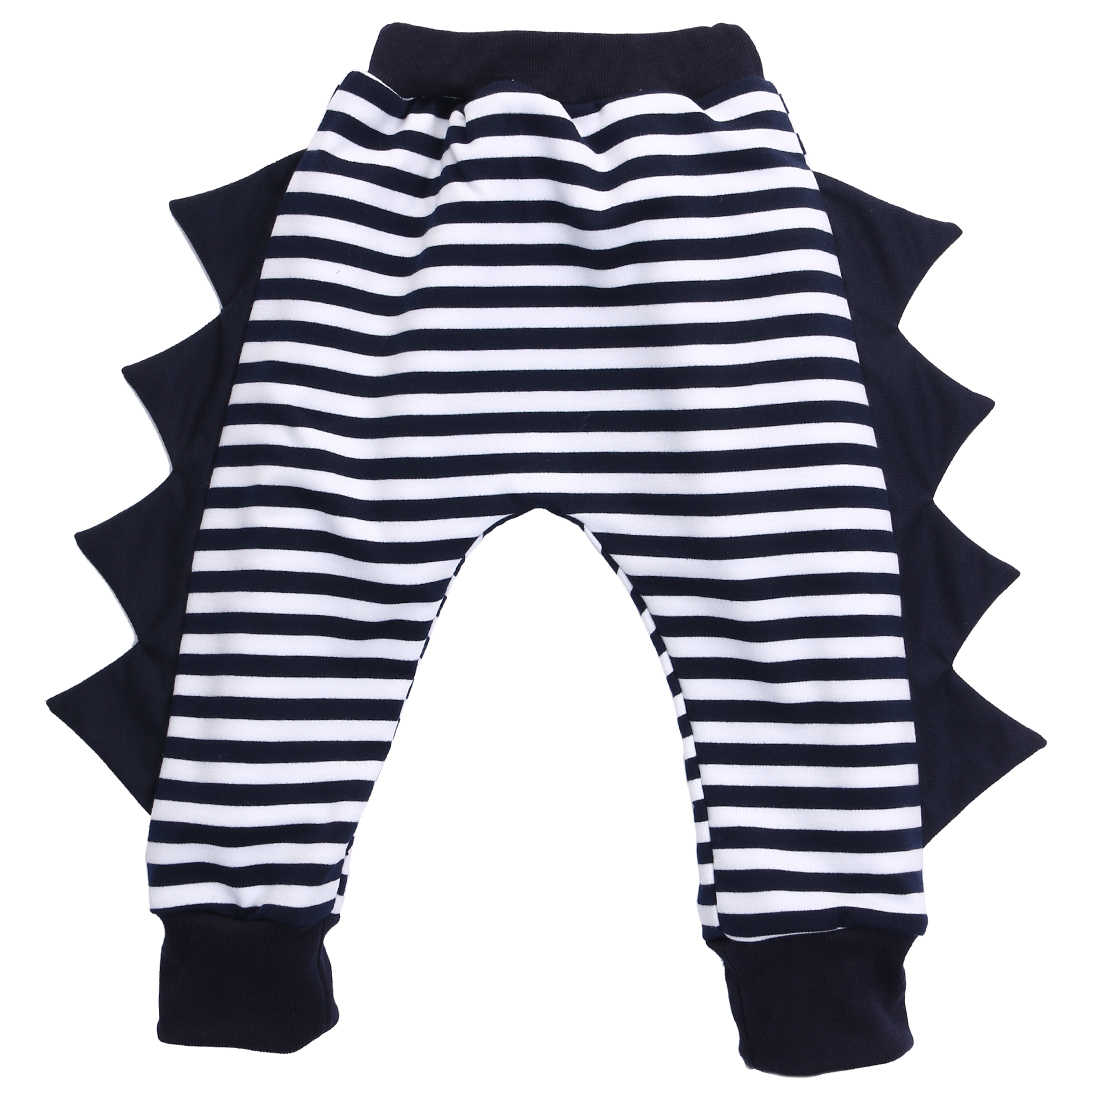 a6f984217fef Detail Feedback Questions about 2017 Cartoon Wholesale Toddler Baby Boy  Girls Baggy Harem Pants Sweatpants Joggers Cotton Bottoms on Aliexpress.com  ...